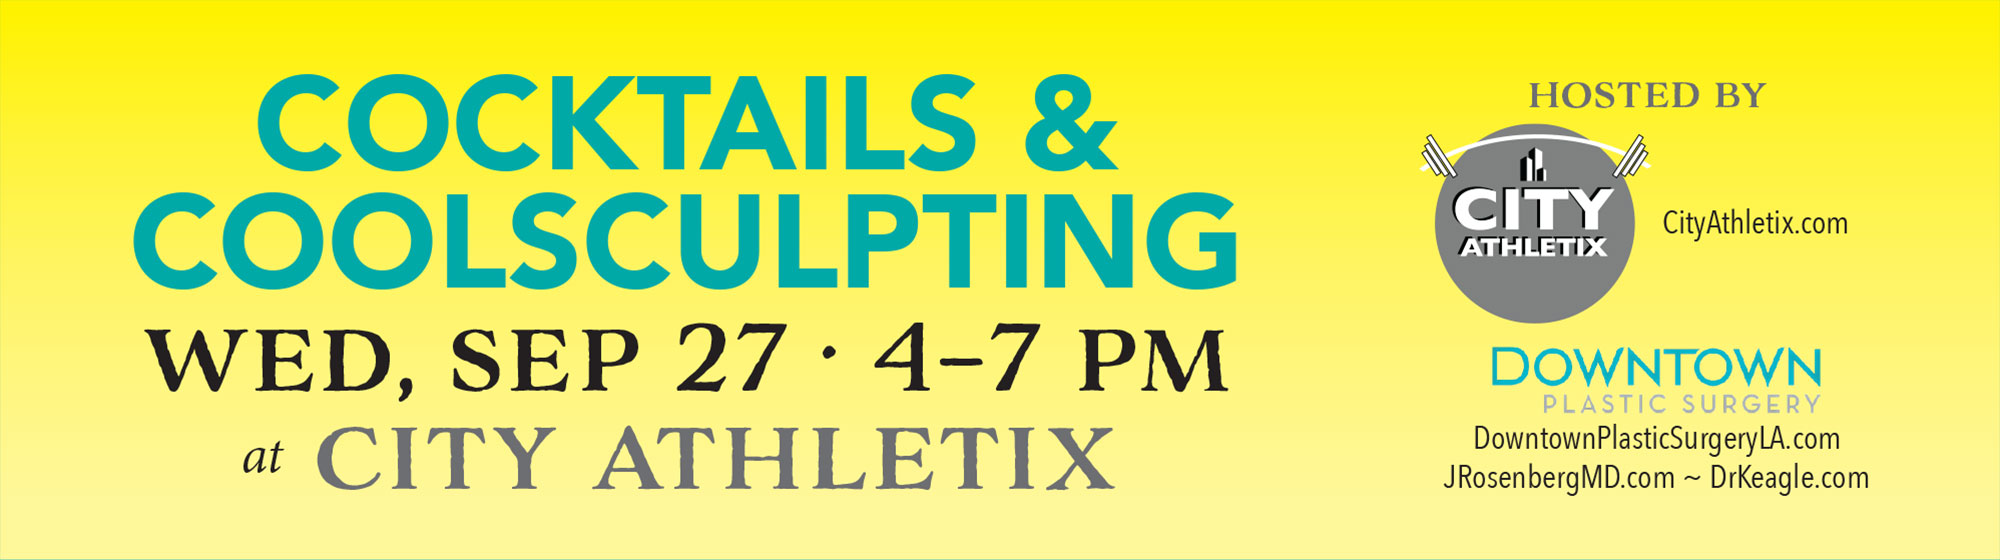 Please join us September 27, 2017 for Cocktails and CoolSculpting at City Athletix